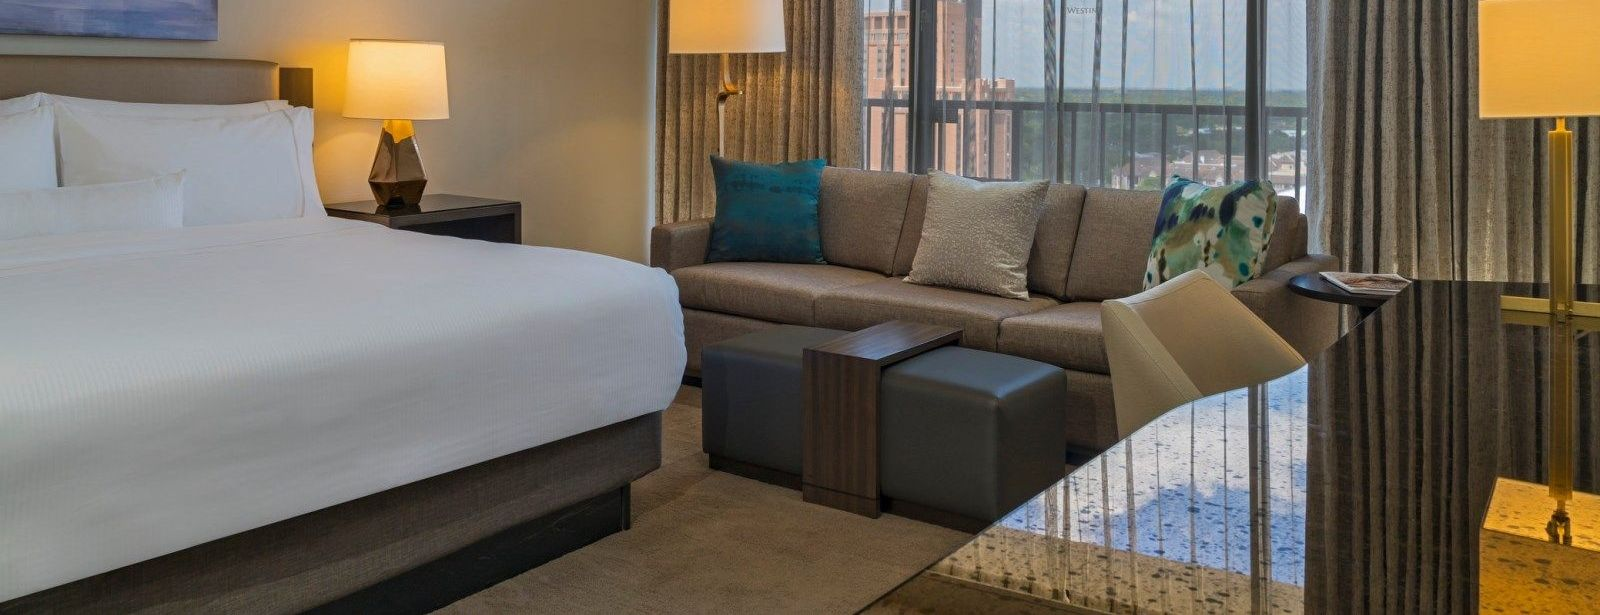 Executive Suite Bedroom  - The Westin Galleria Houston